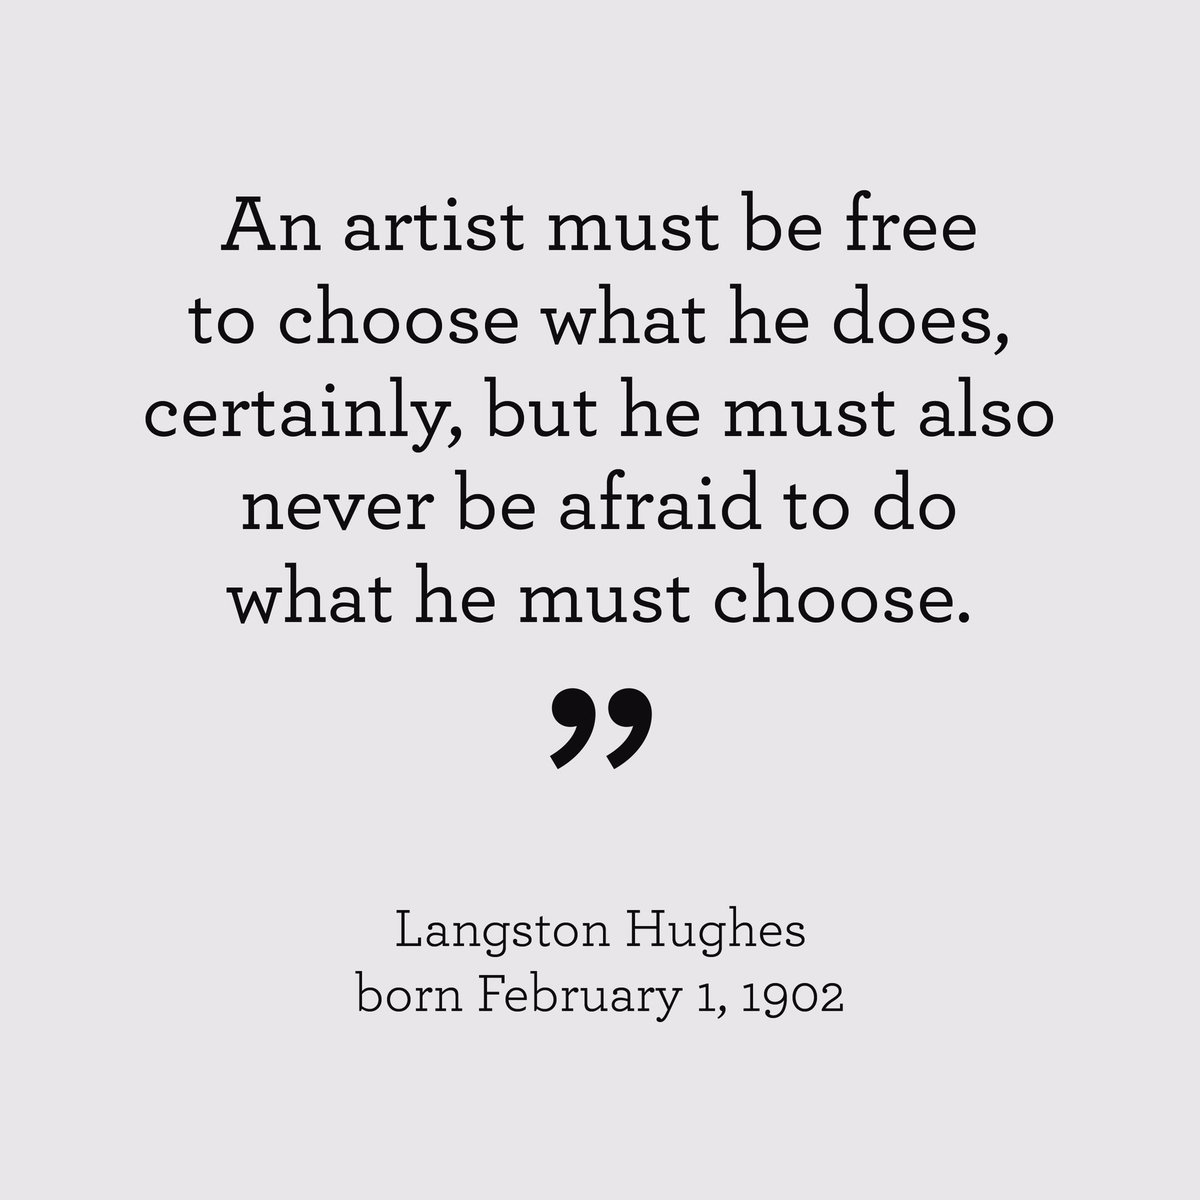 Happy Birthday, Langston Hughes, born on this day, Feb 1, in 1902. https://t.co/45uVzll2d1